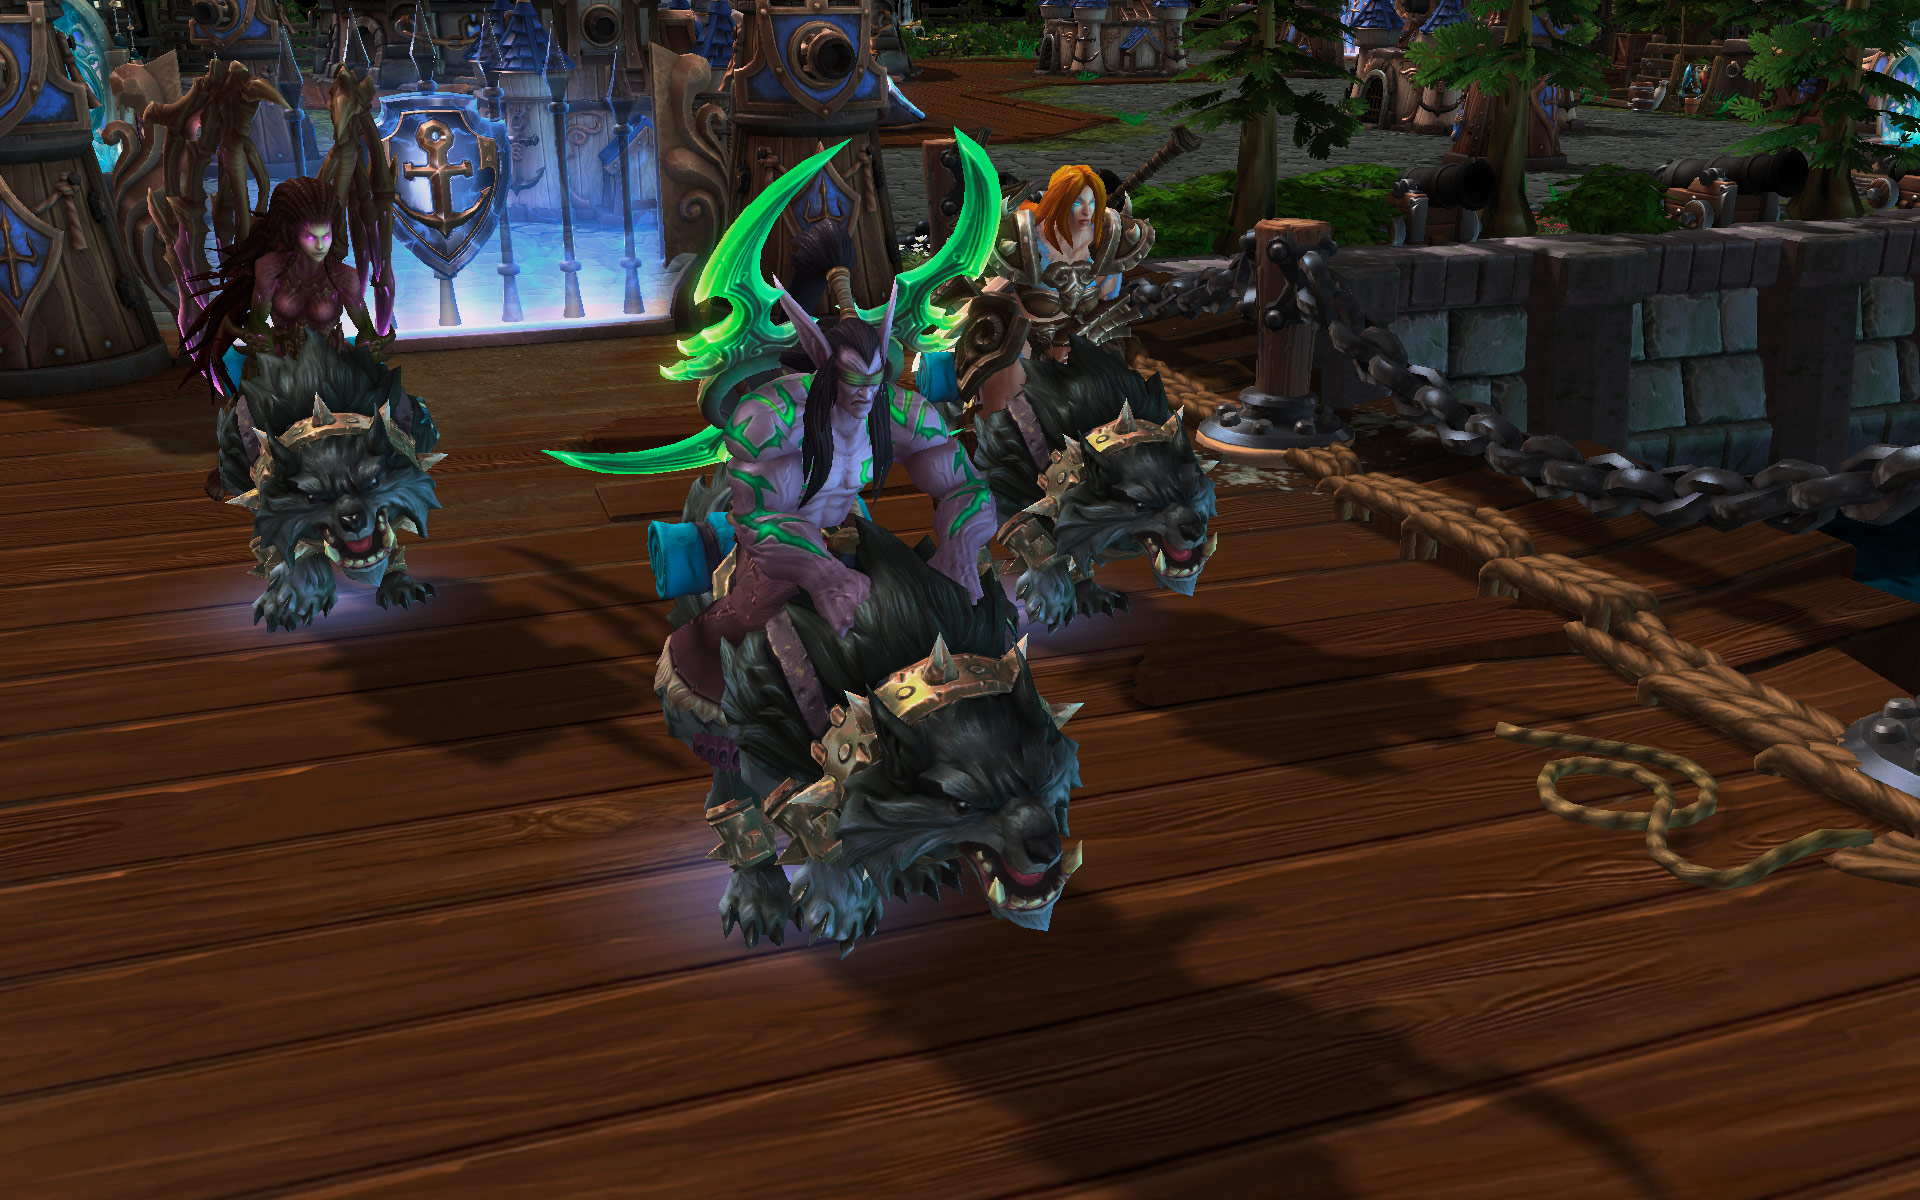 Heroes Of The Storm: Universes Collide In First Gameplay Trailer And Screenshots #29621